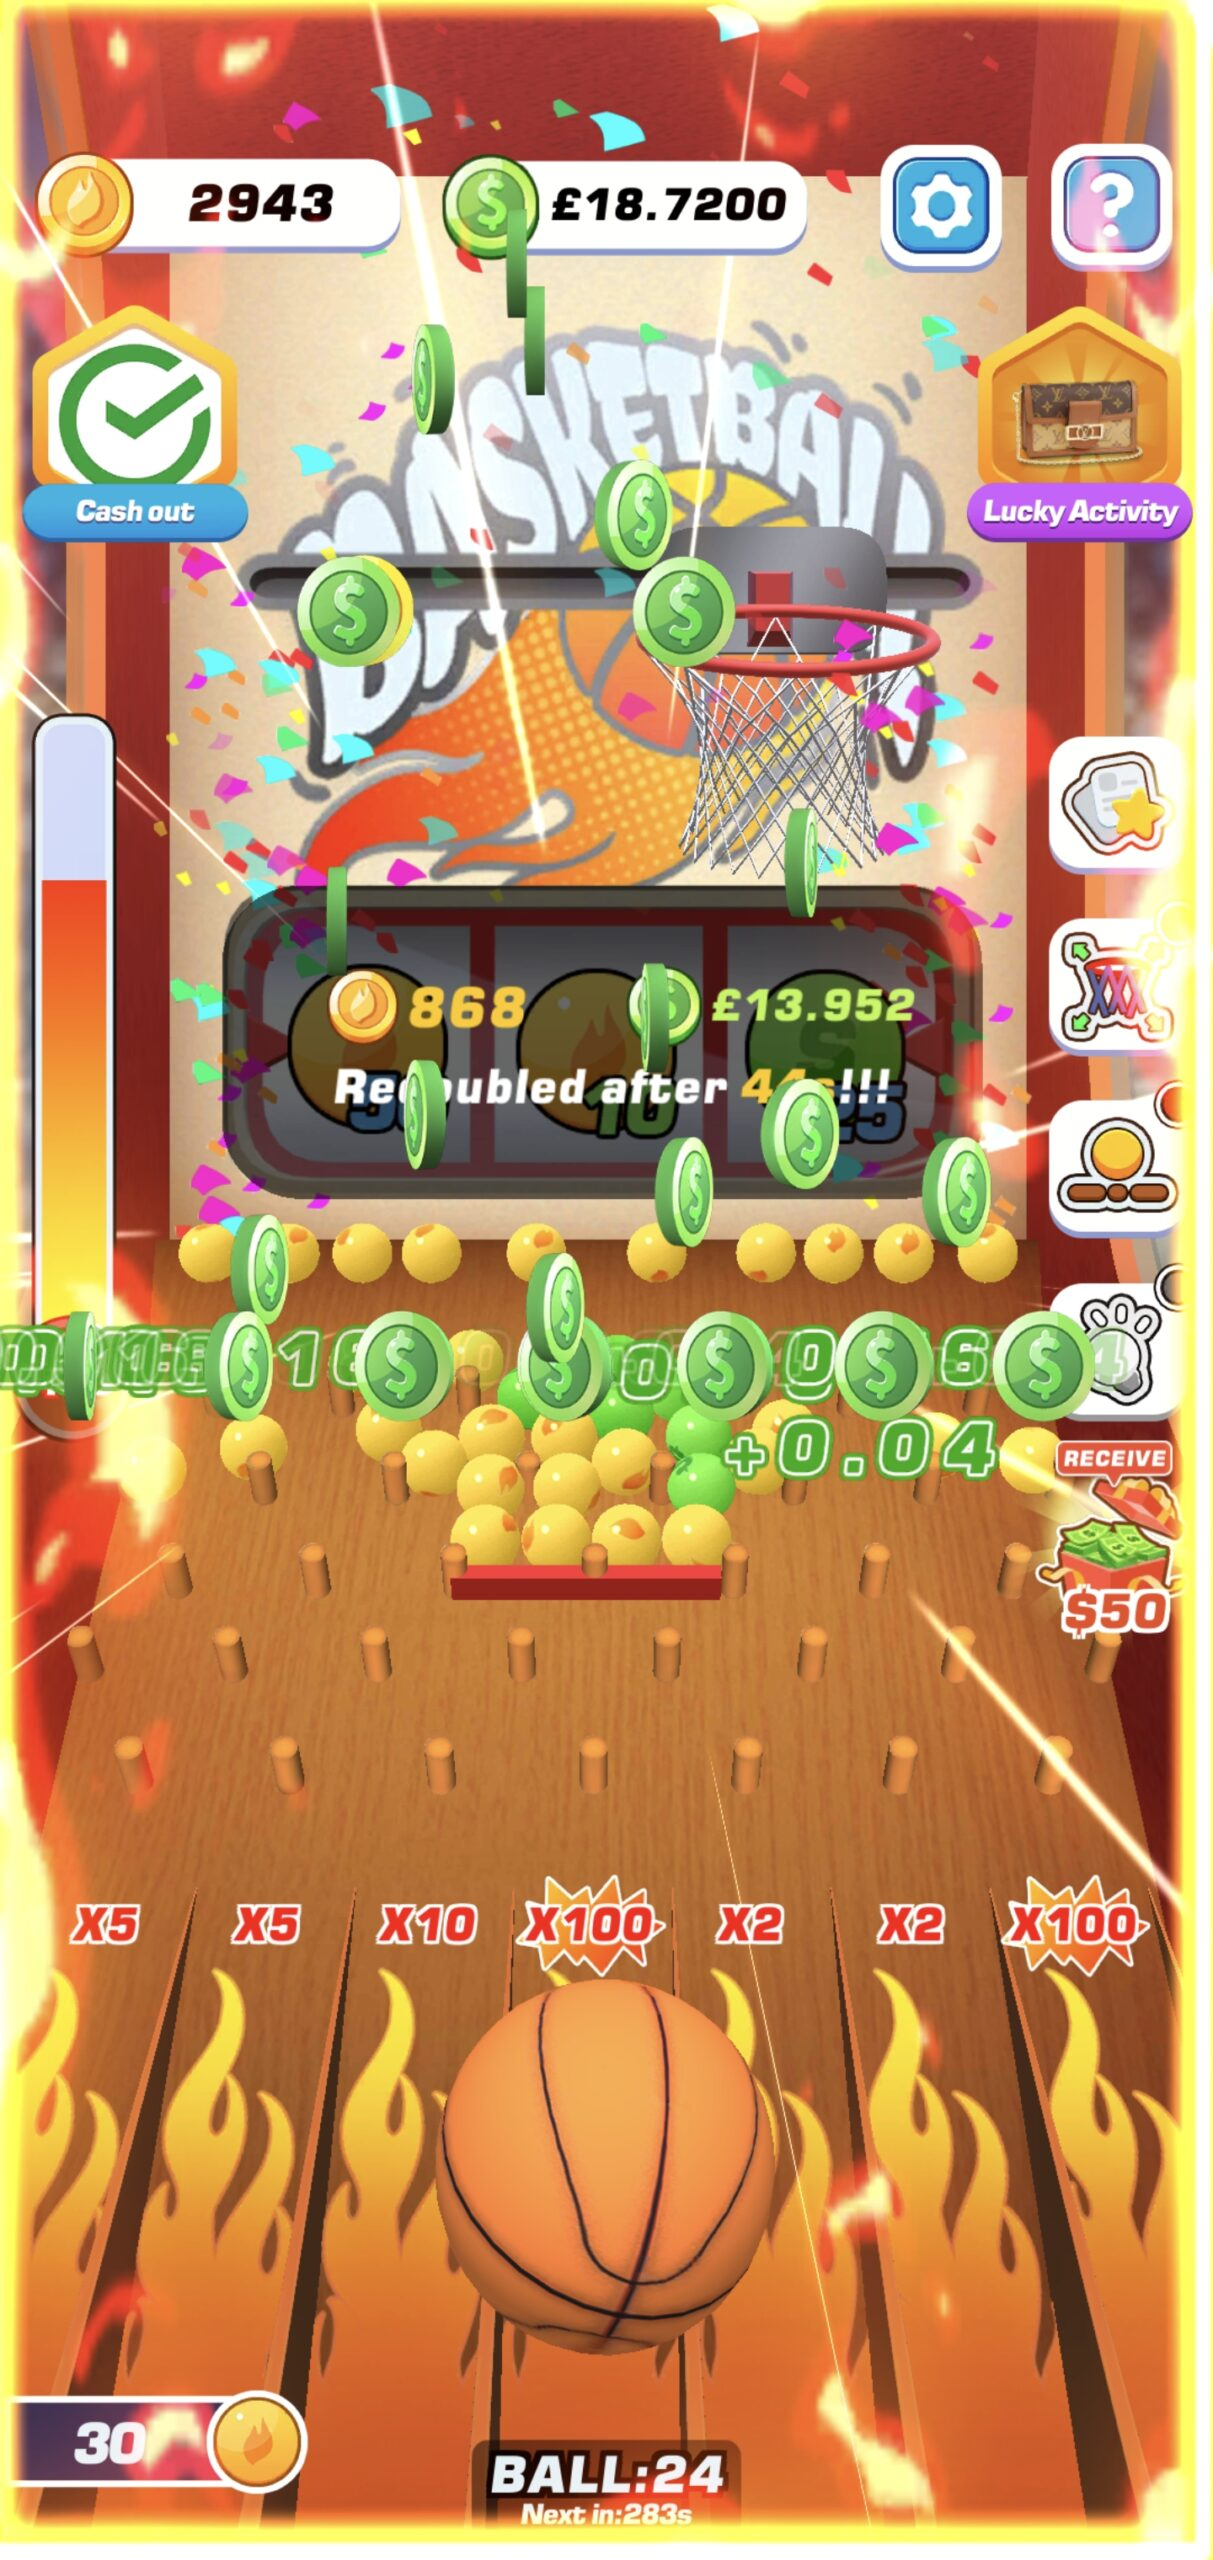 Shooting hoops for cash and coins